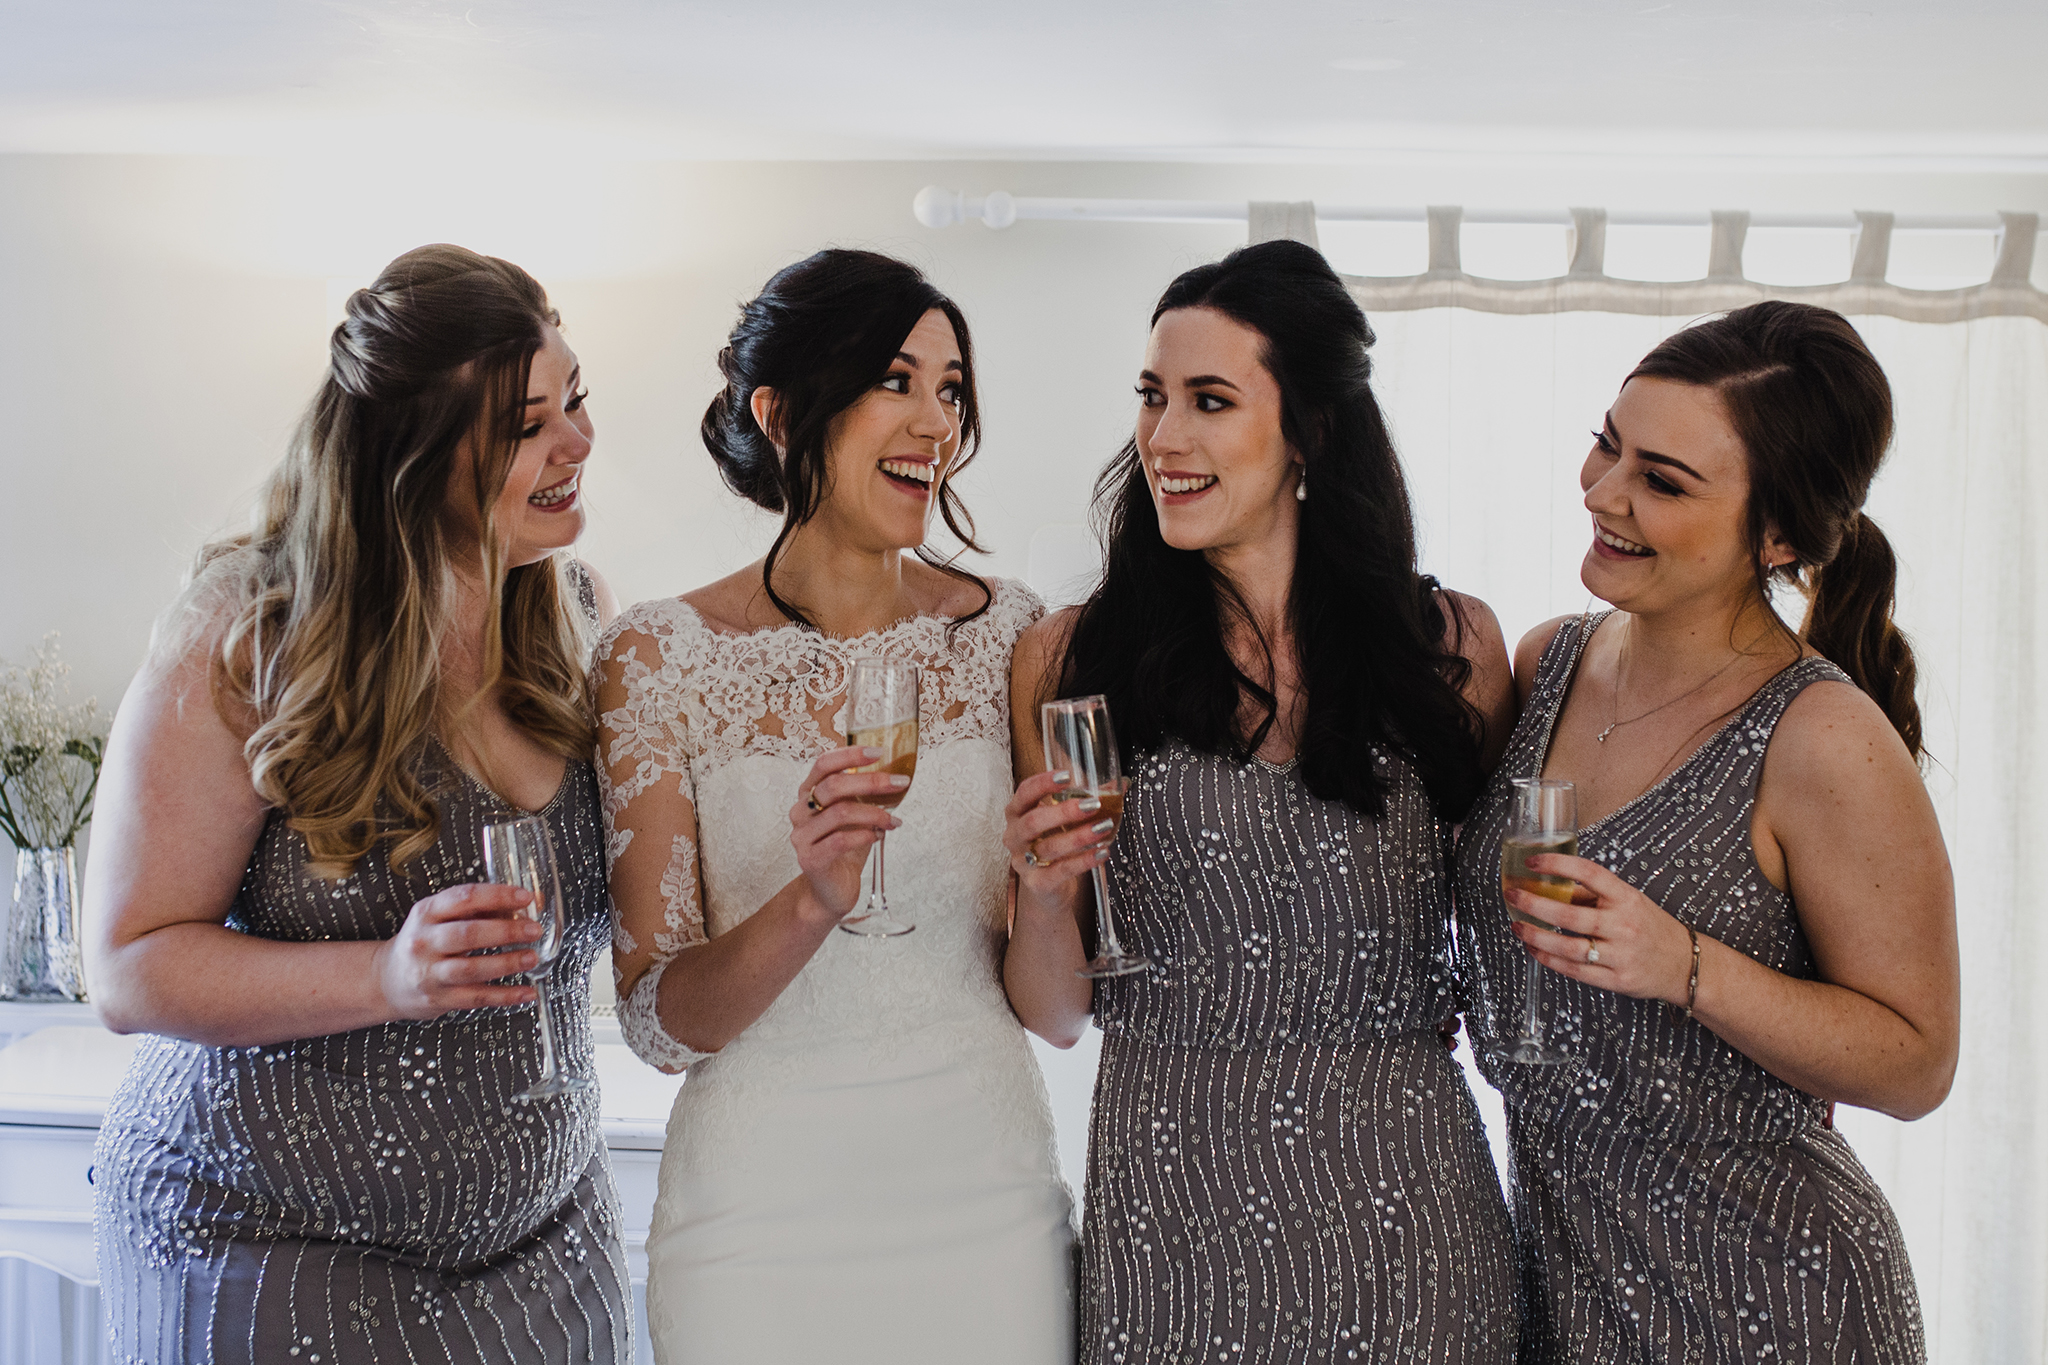 Bride and bridesmaids toasting and being happy in a hotel room